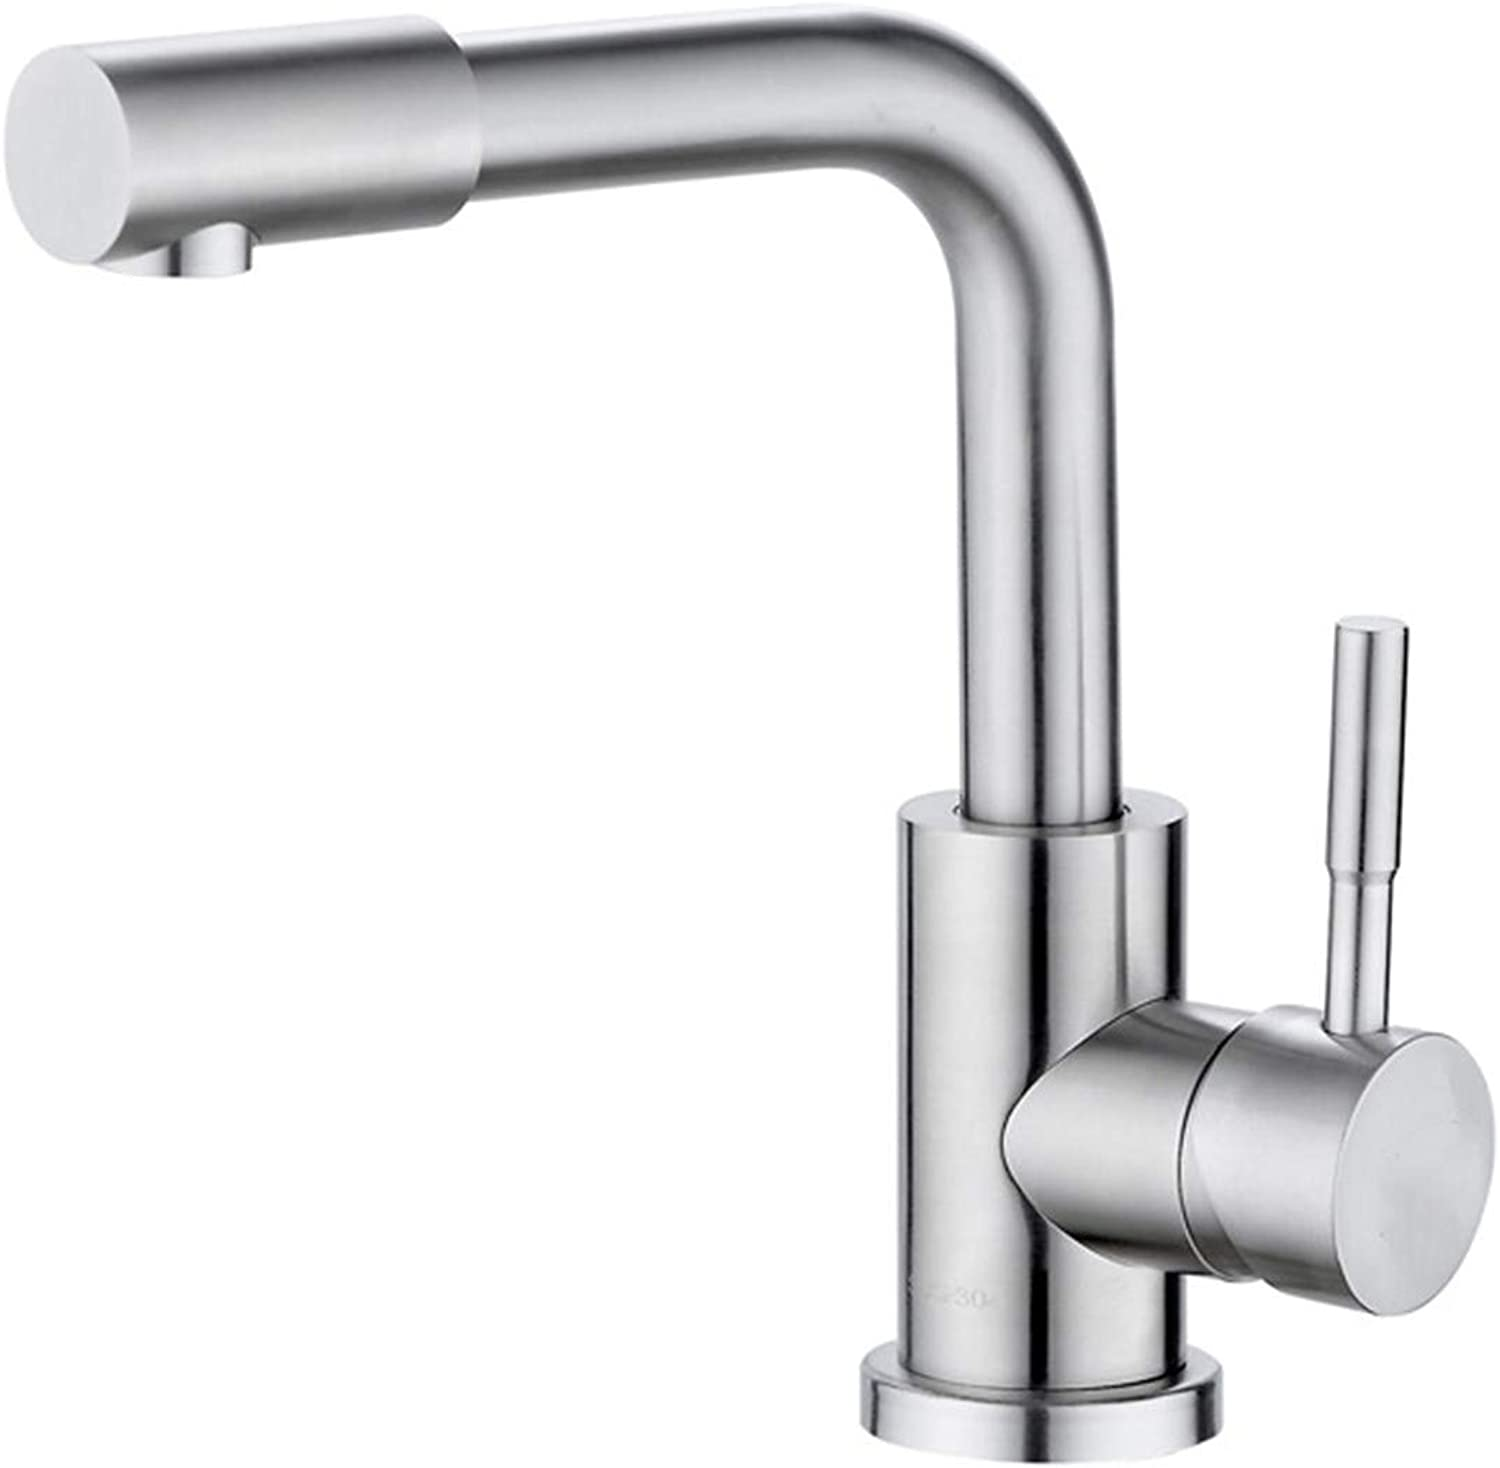 XPYFaucet Faucet Tap Taps ?Bathroom bathroom wash basin, hot and cold, can be redated, bright